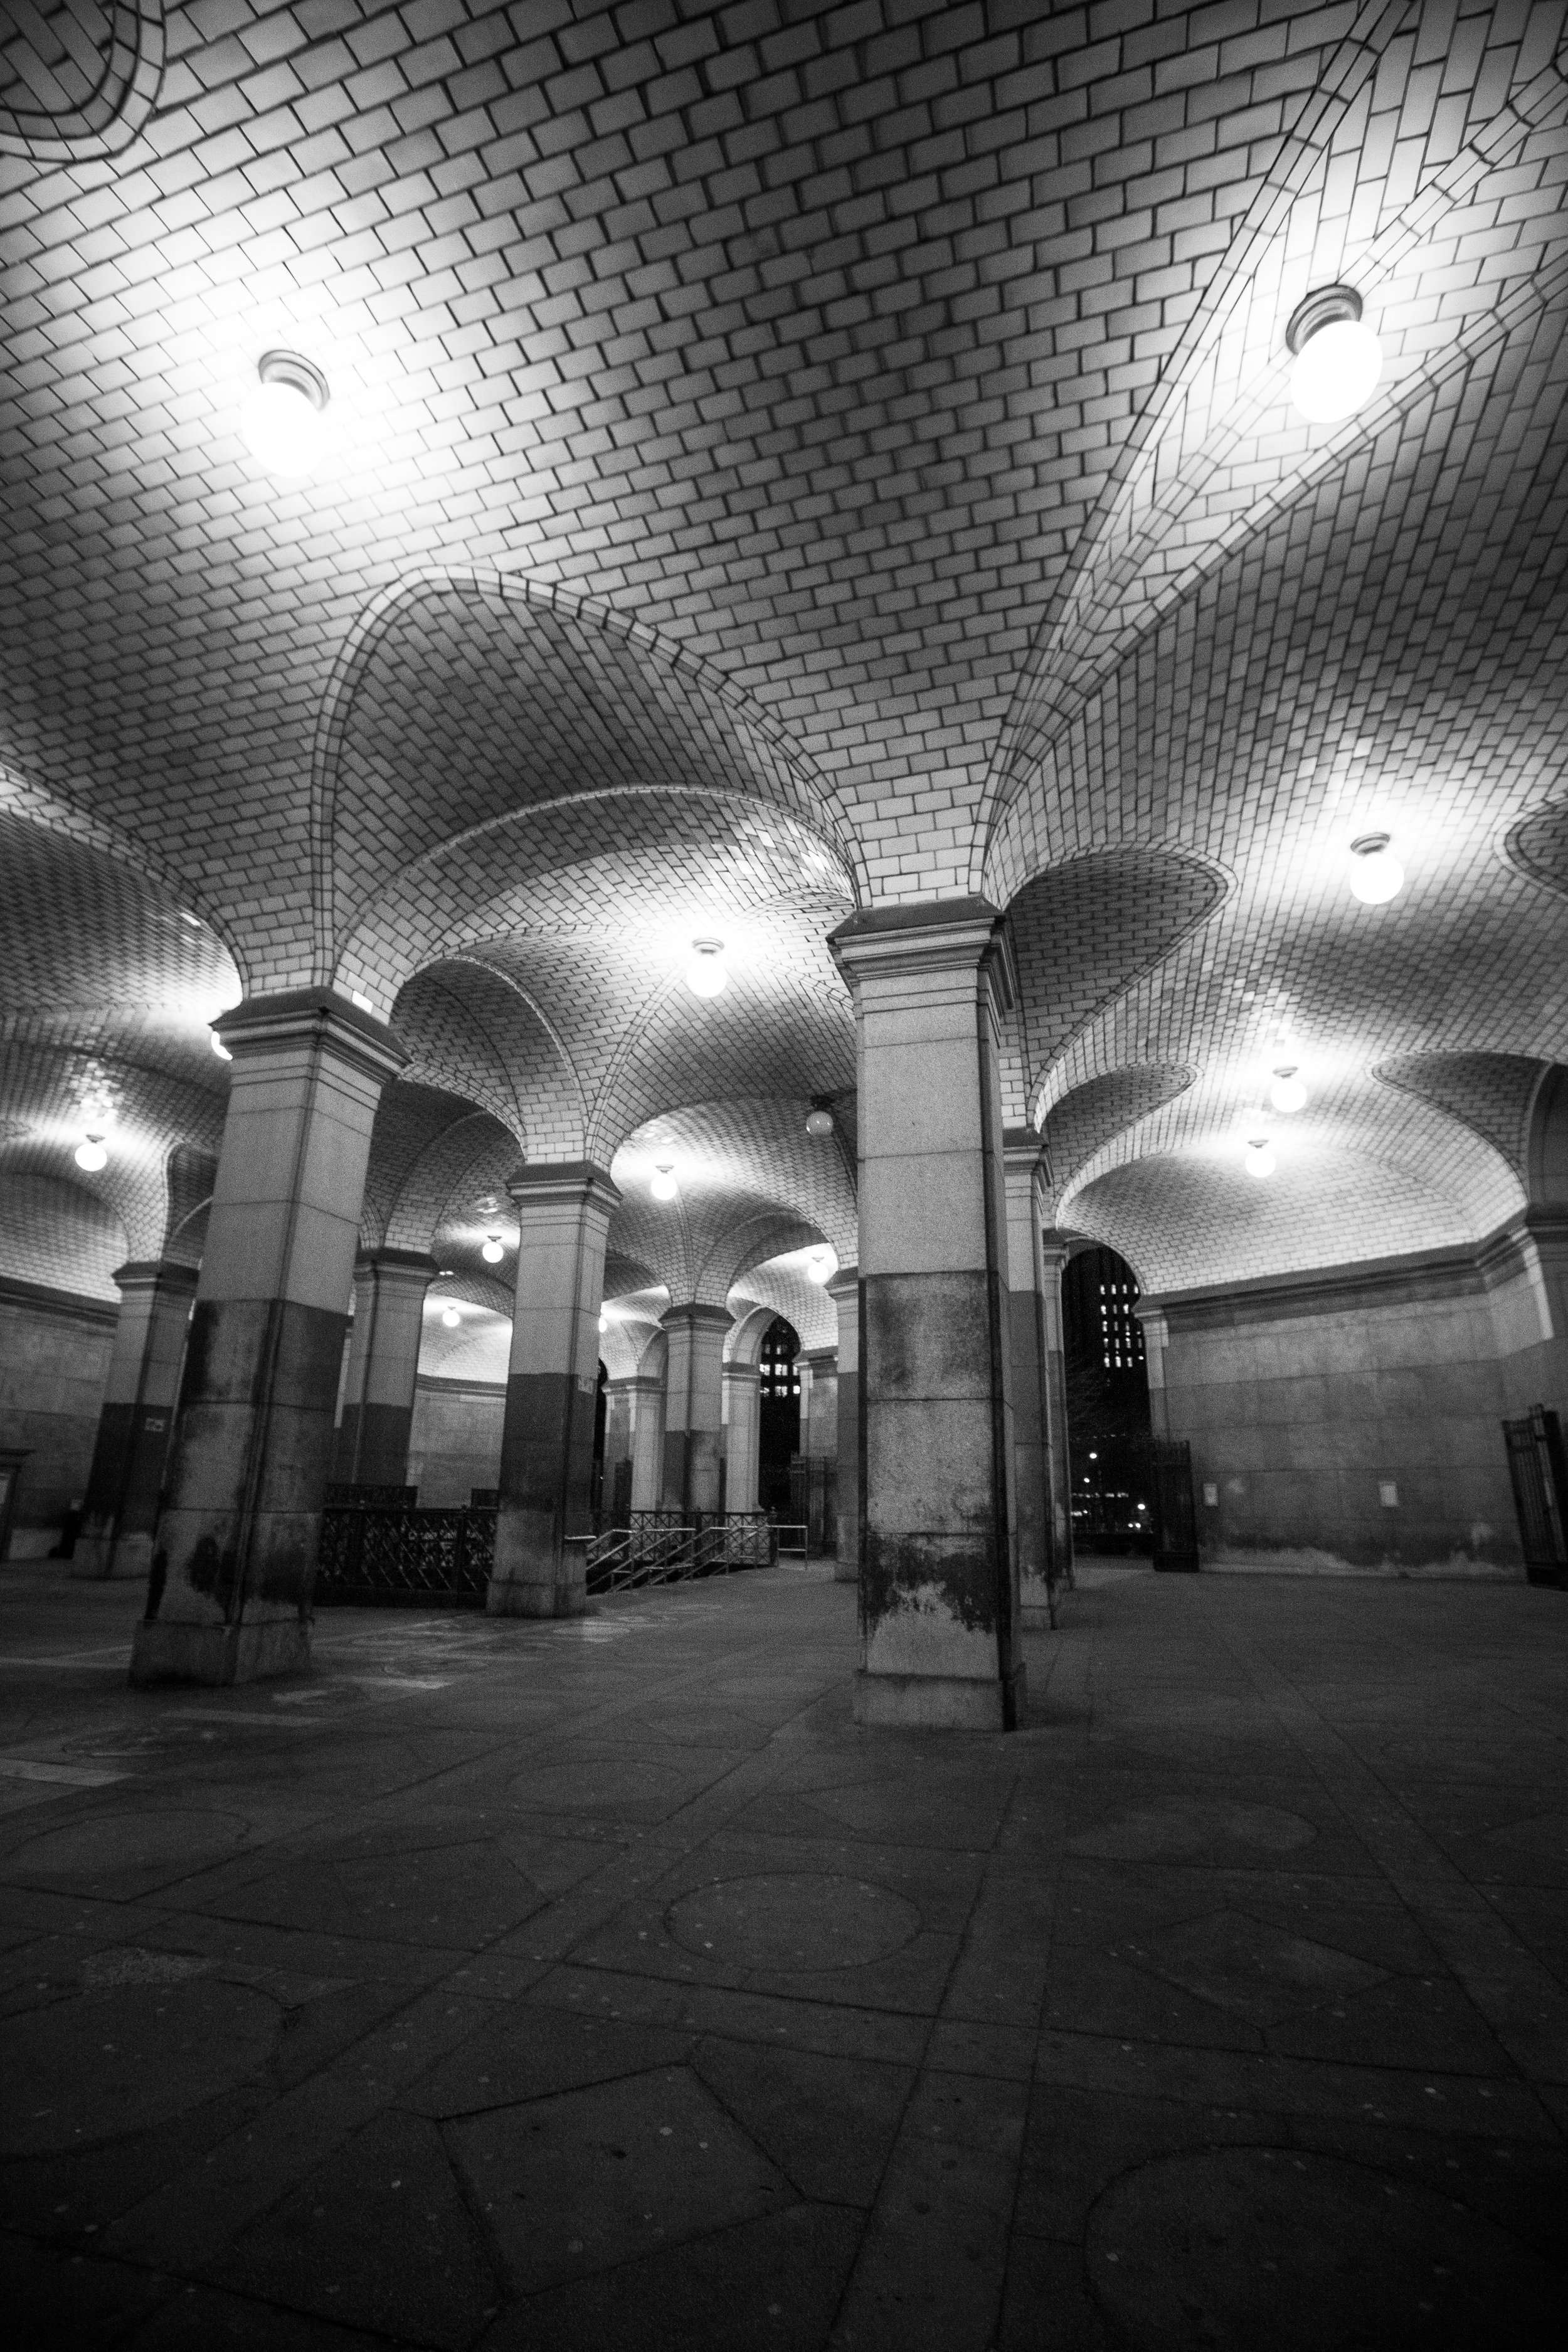 Chambers Street Station